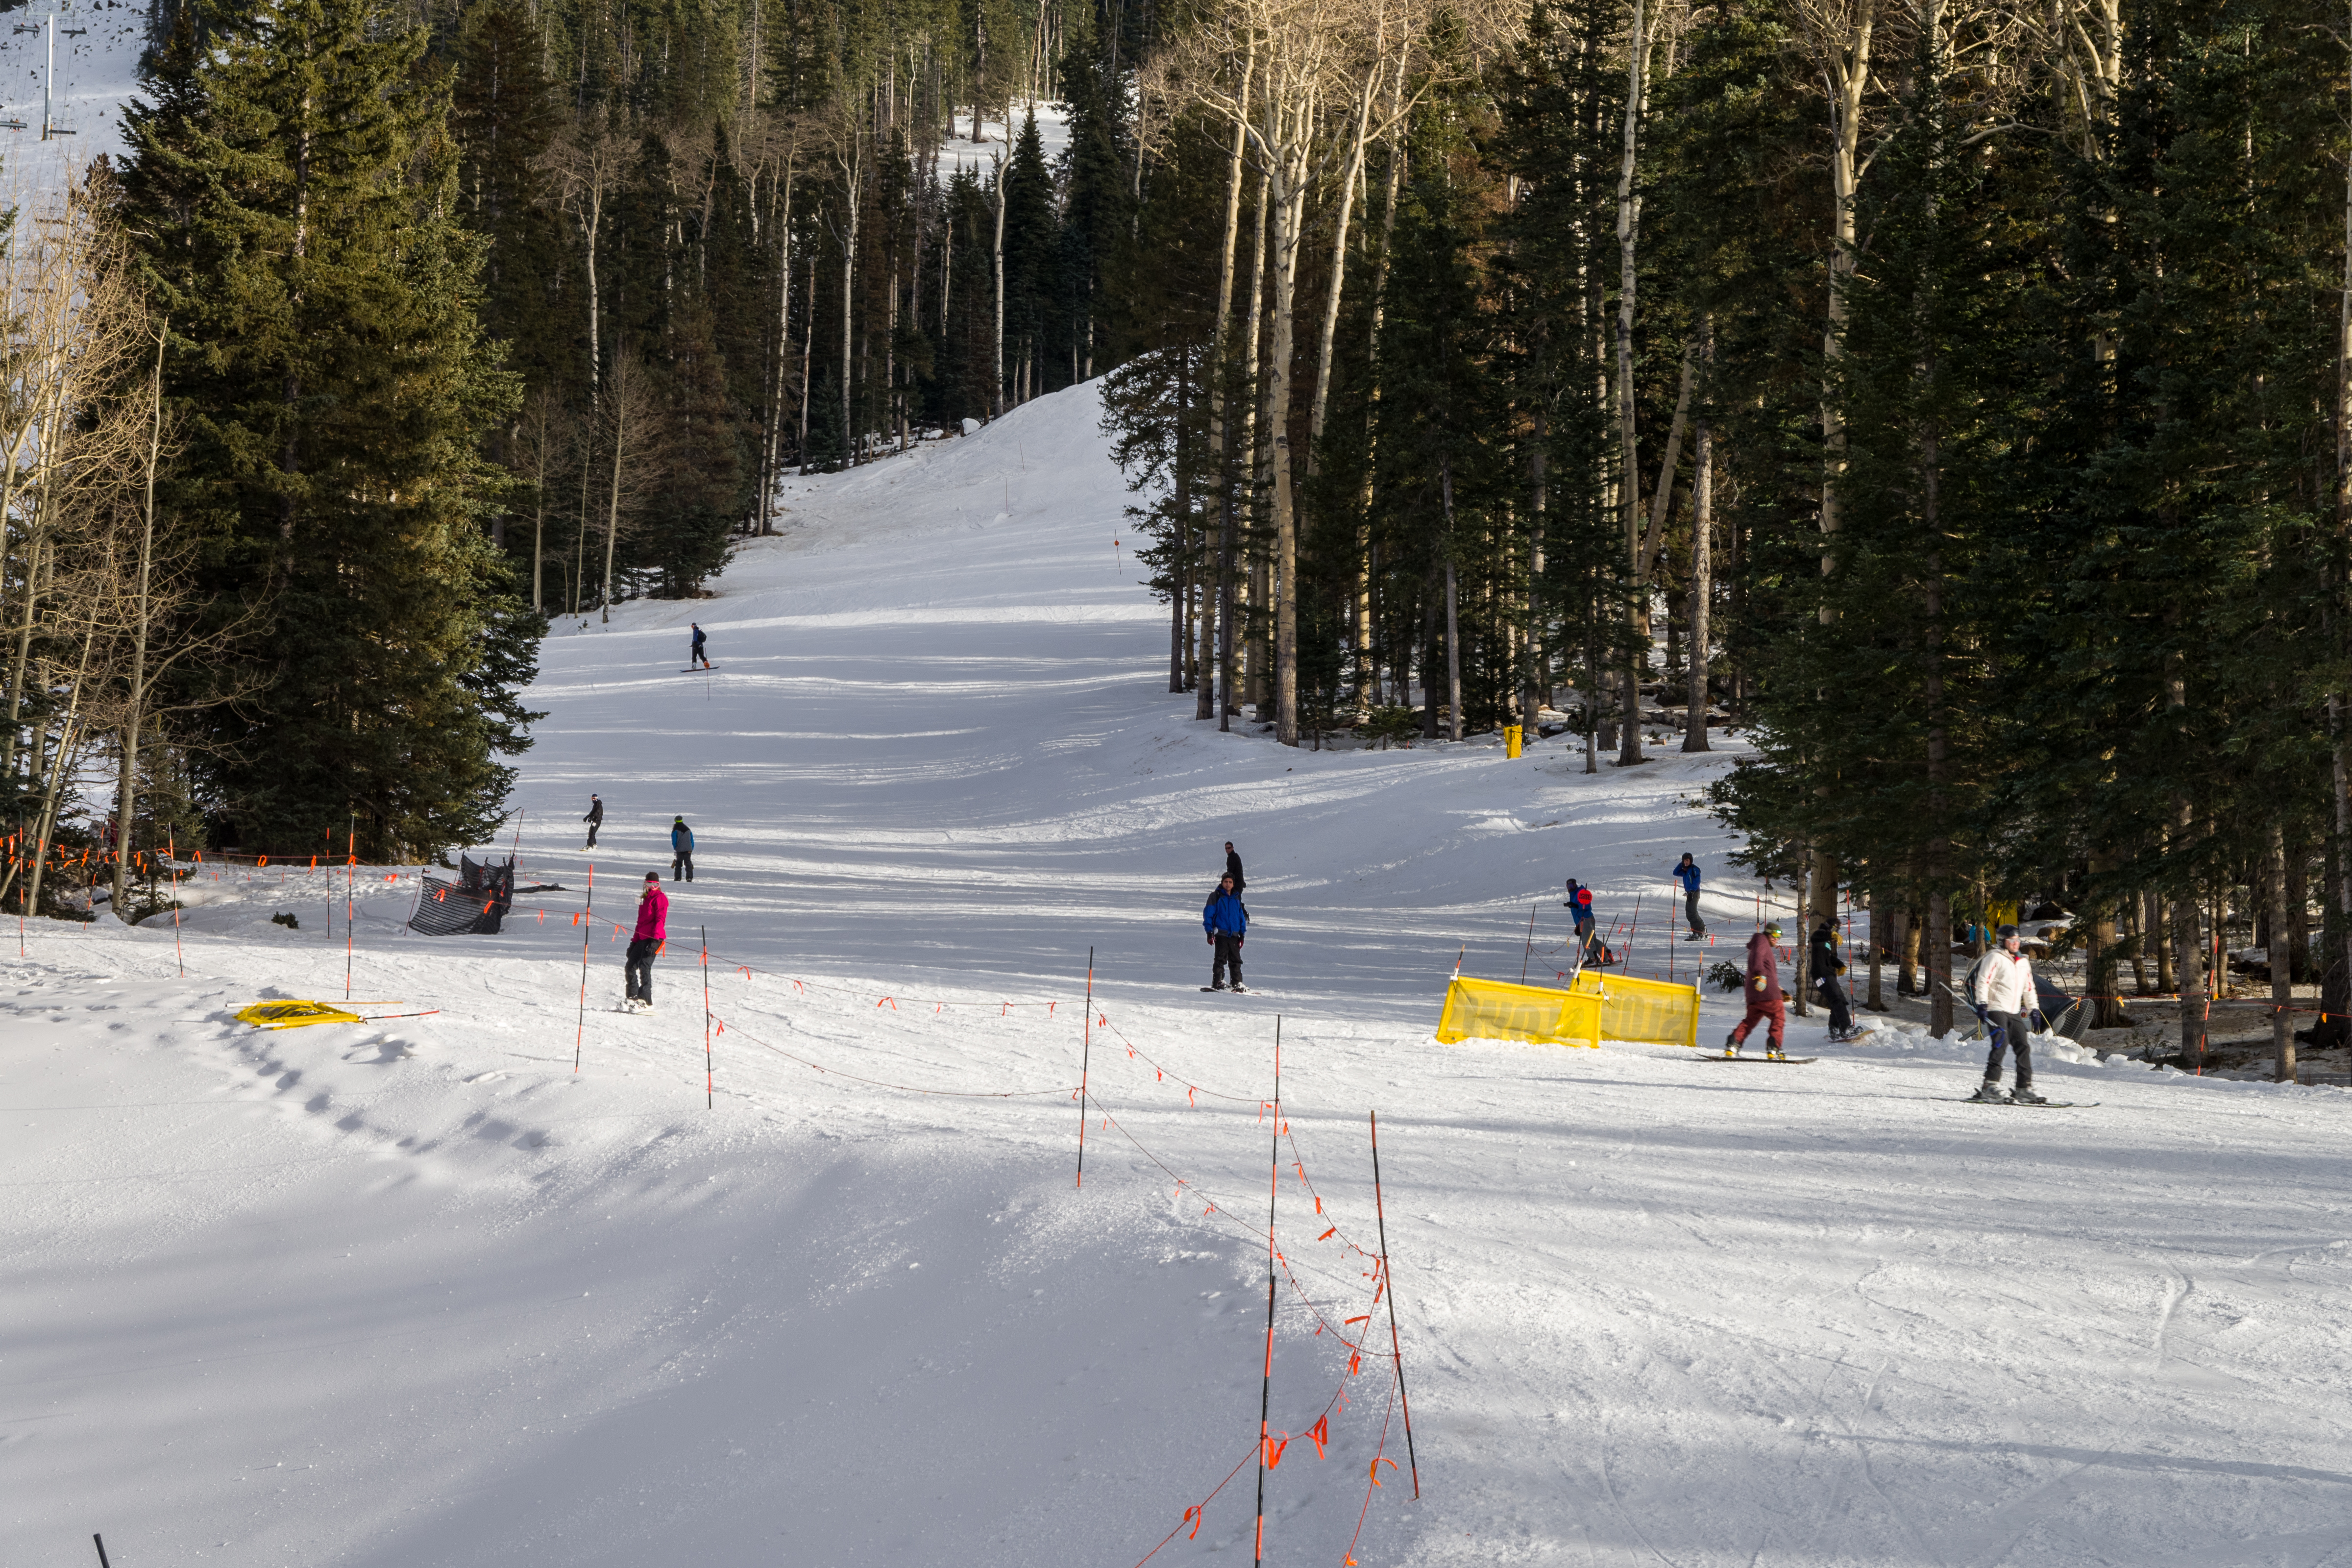 A picture of several skiers and snowboarders making their way down a ski run.